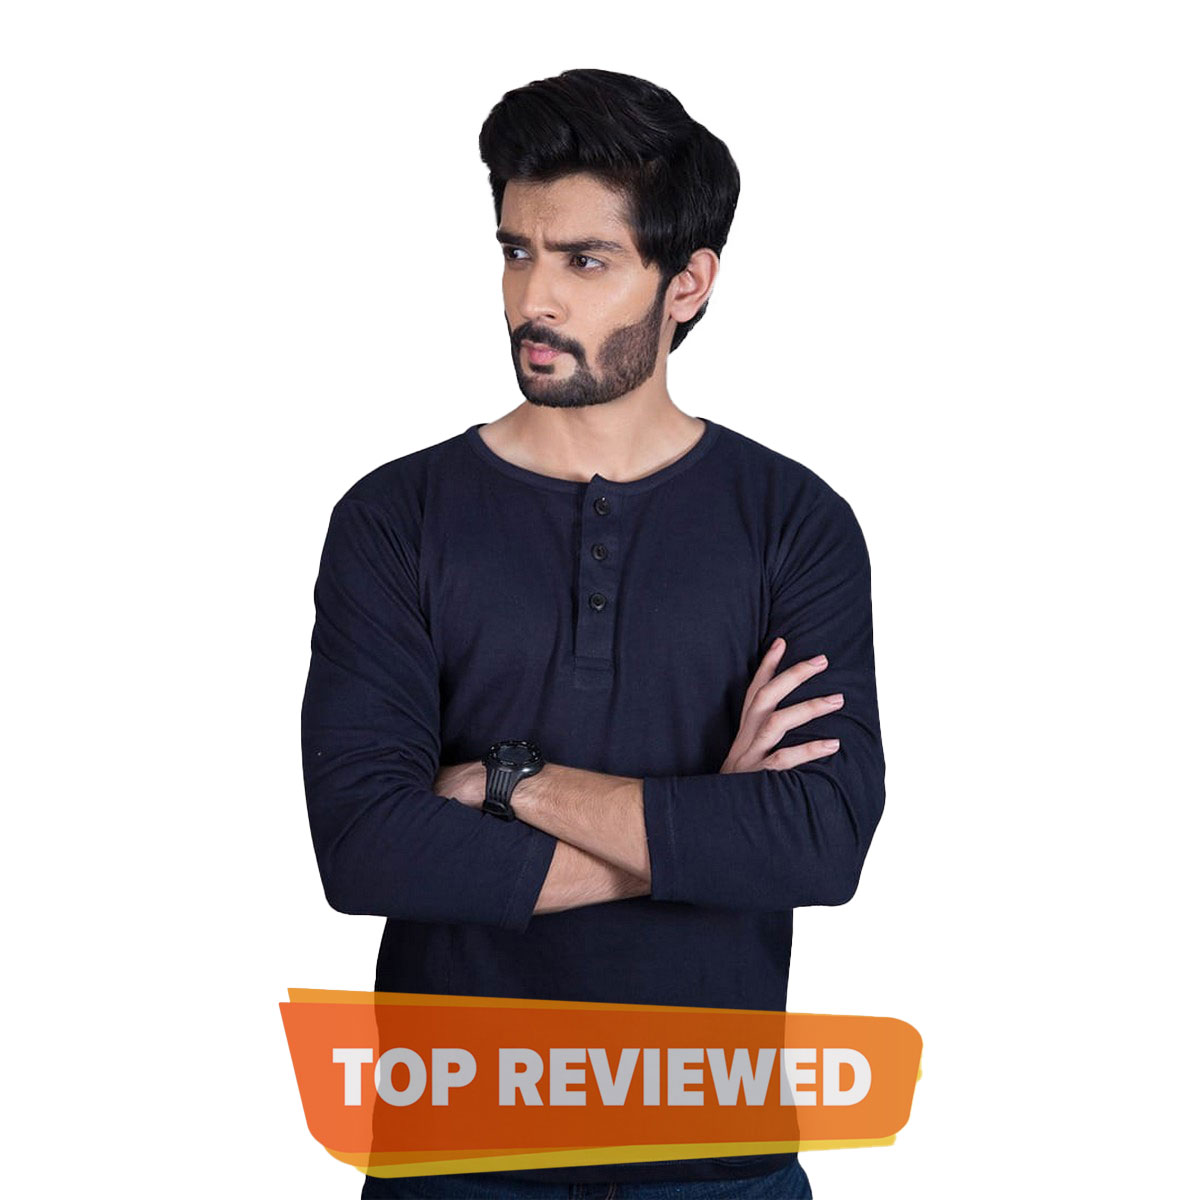 Henley Plain Full long Sleeves Tshirts for Mens- Soft Jersey cotton long sleeves shirt for men